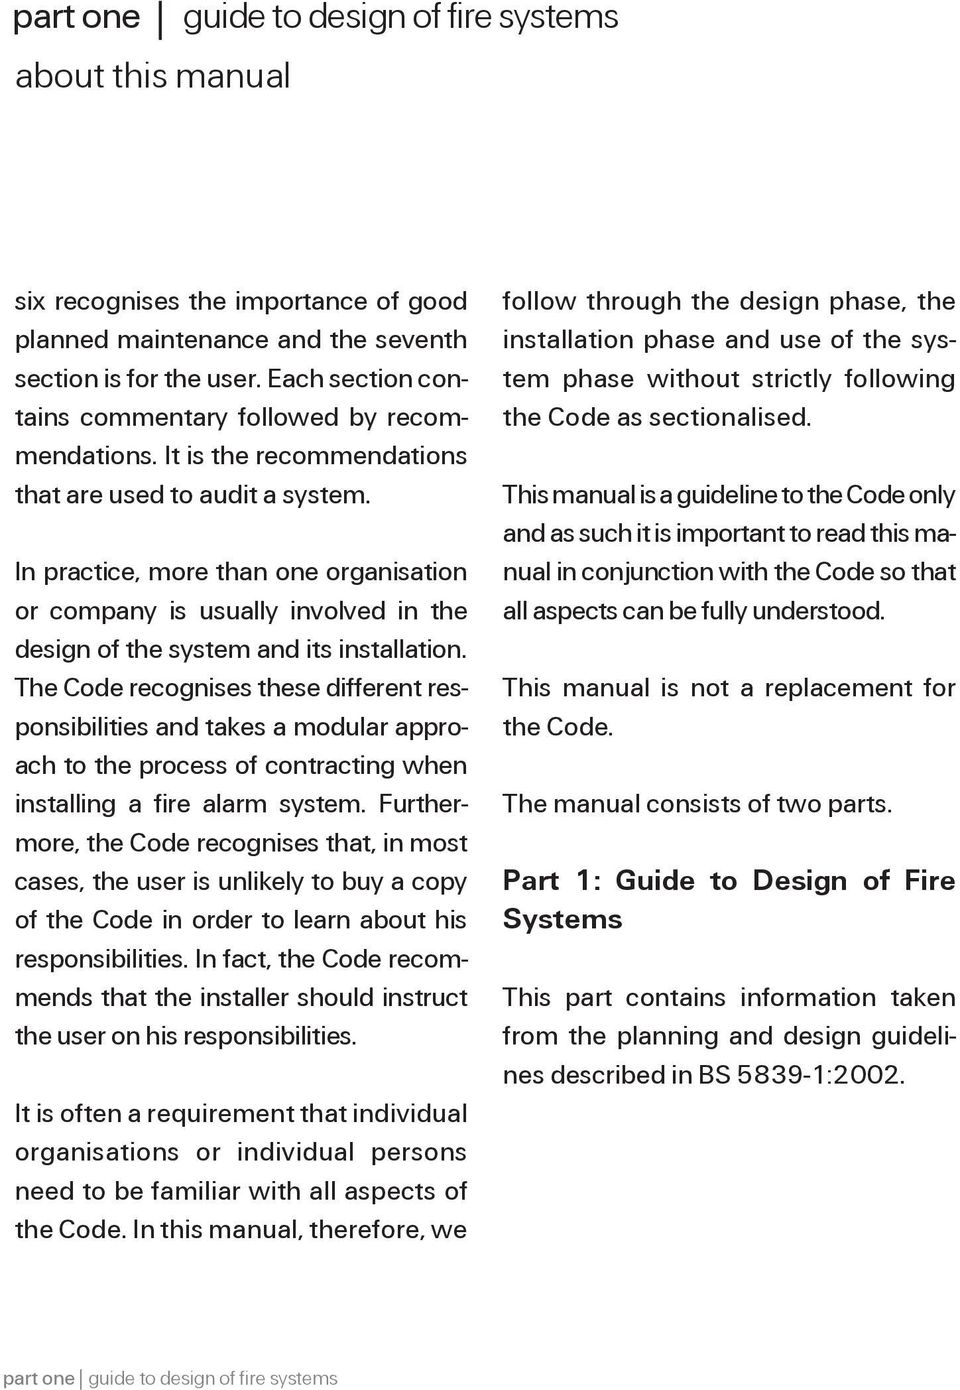 Consultant S Guide For Designing Fire Detection Alarm Systems Pdf Free Download